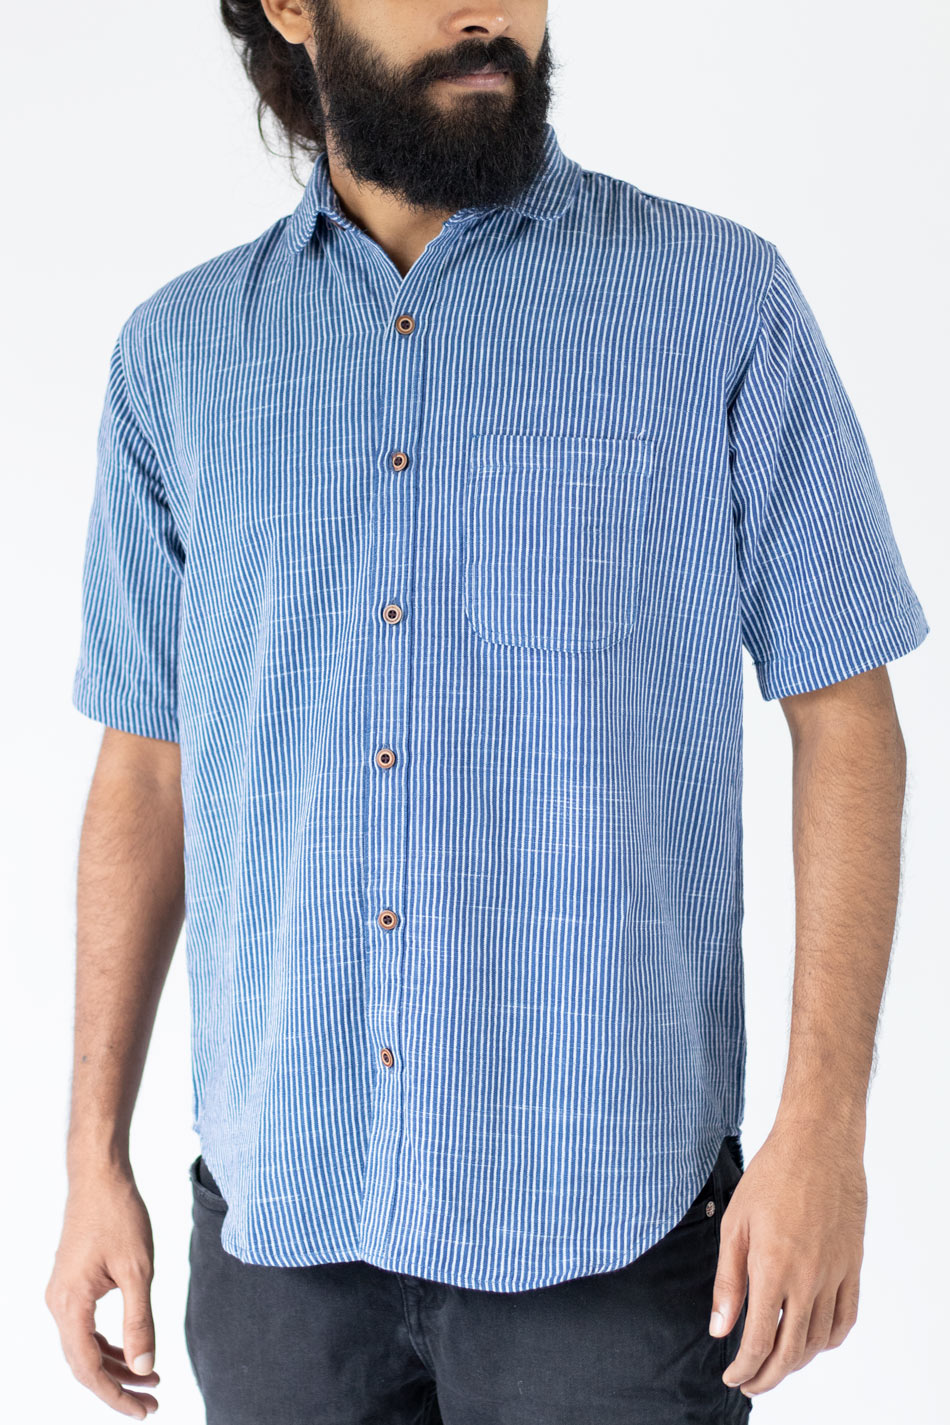 Arctic Blue White Striped shirt for men